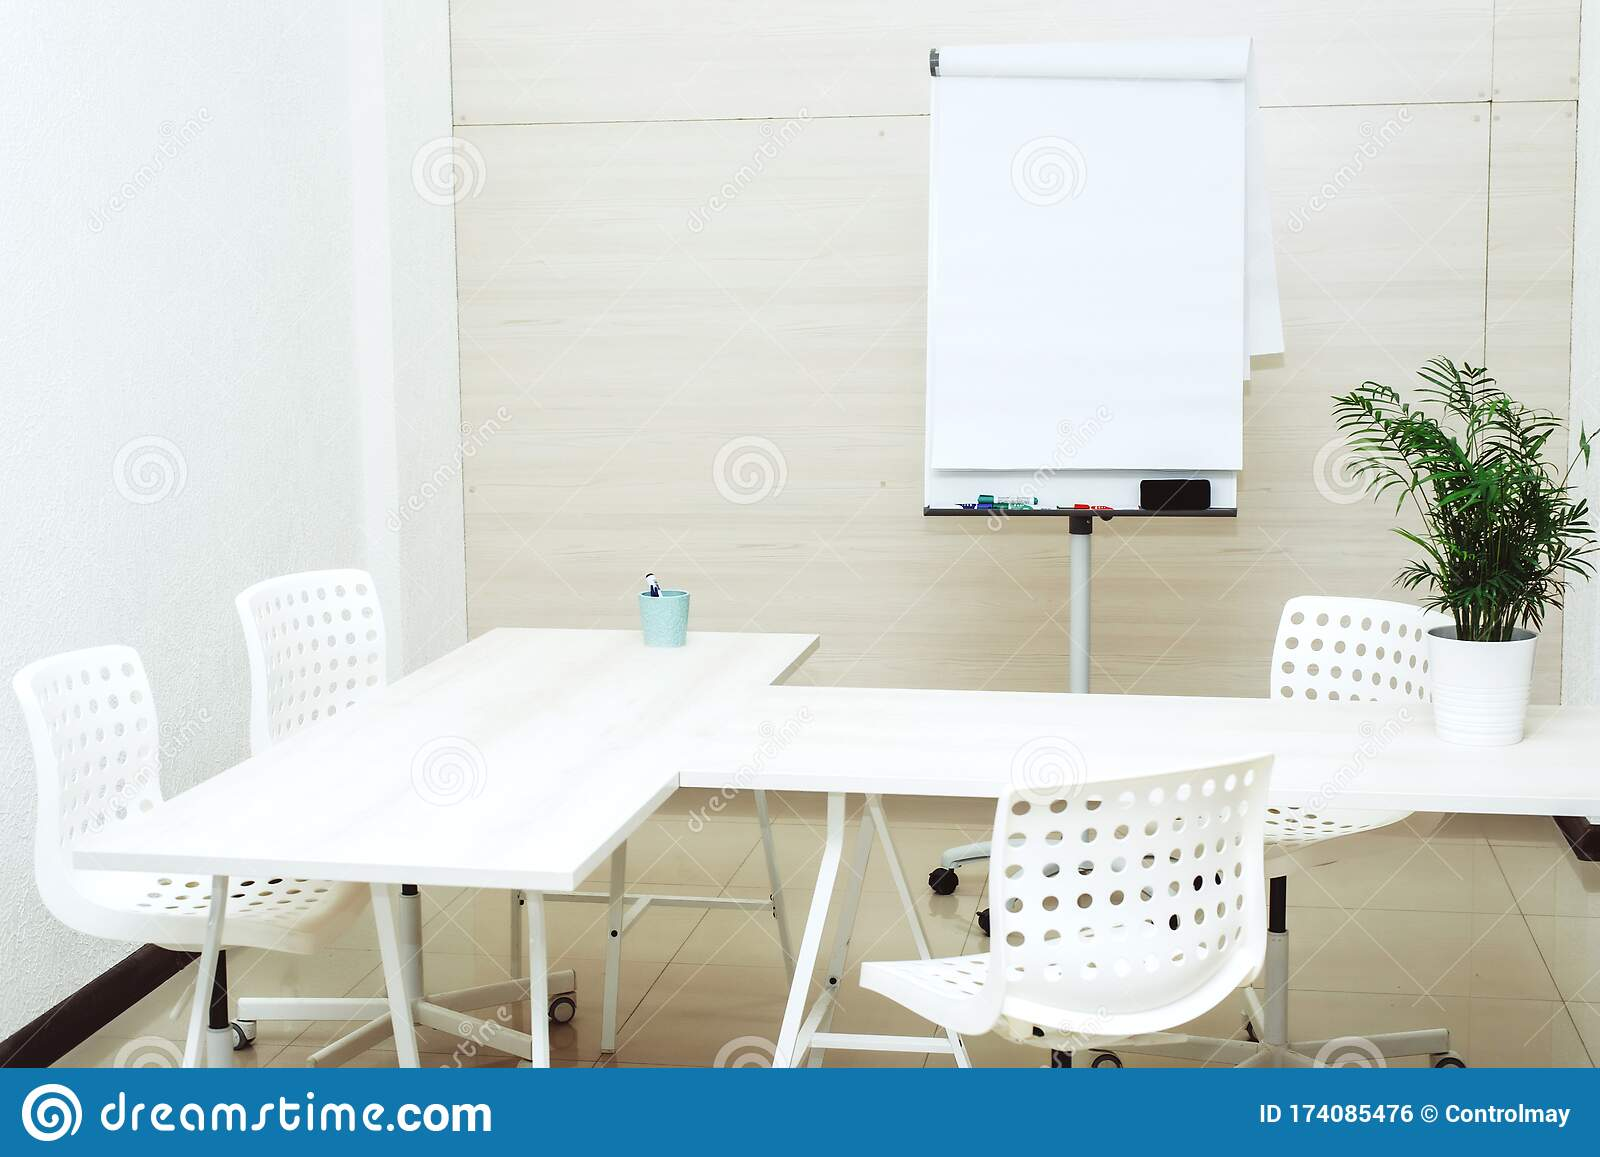 Small Bright Empty Office With Chairs A Table And A Flipchart A Small Cozy Room For Study At The University Copyspace Template Stock Photo Image Of Decoration Area 174085476